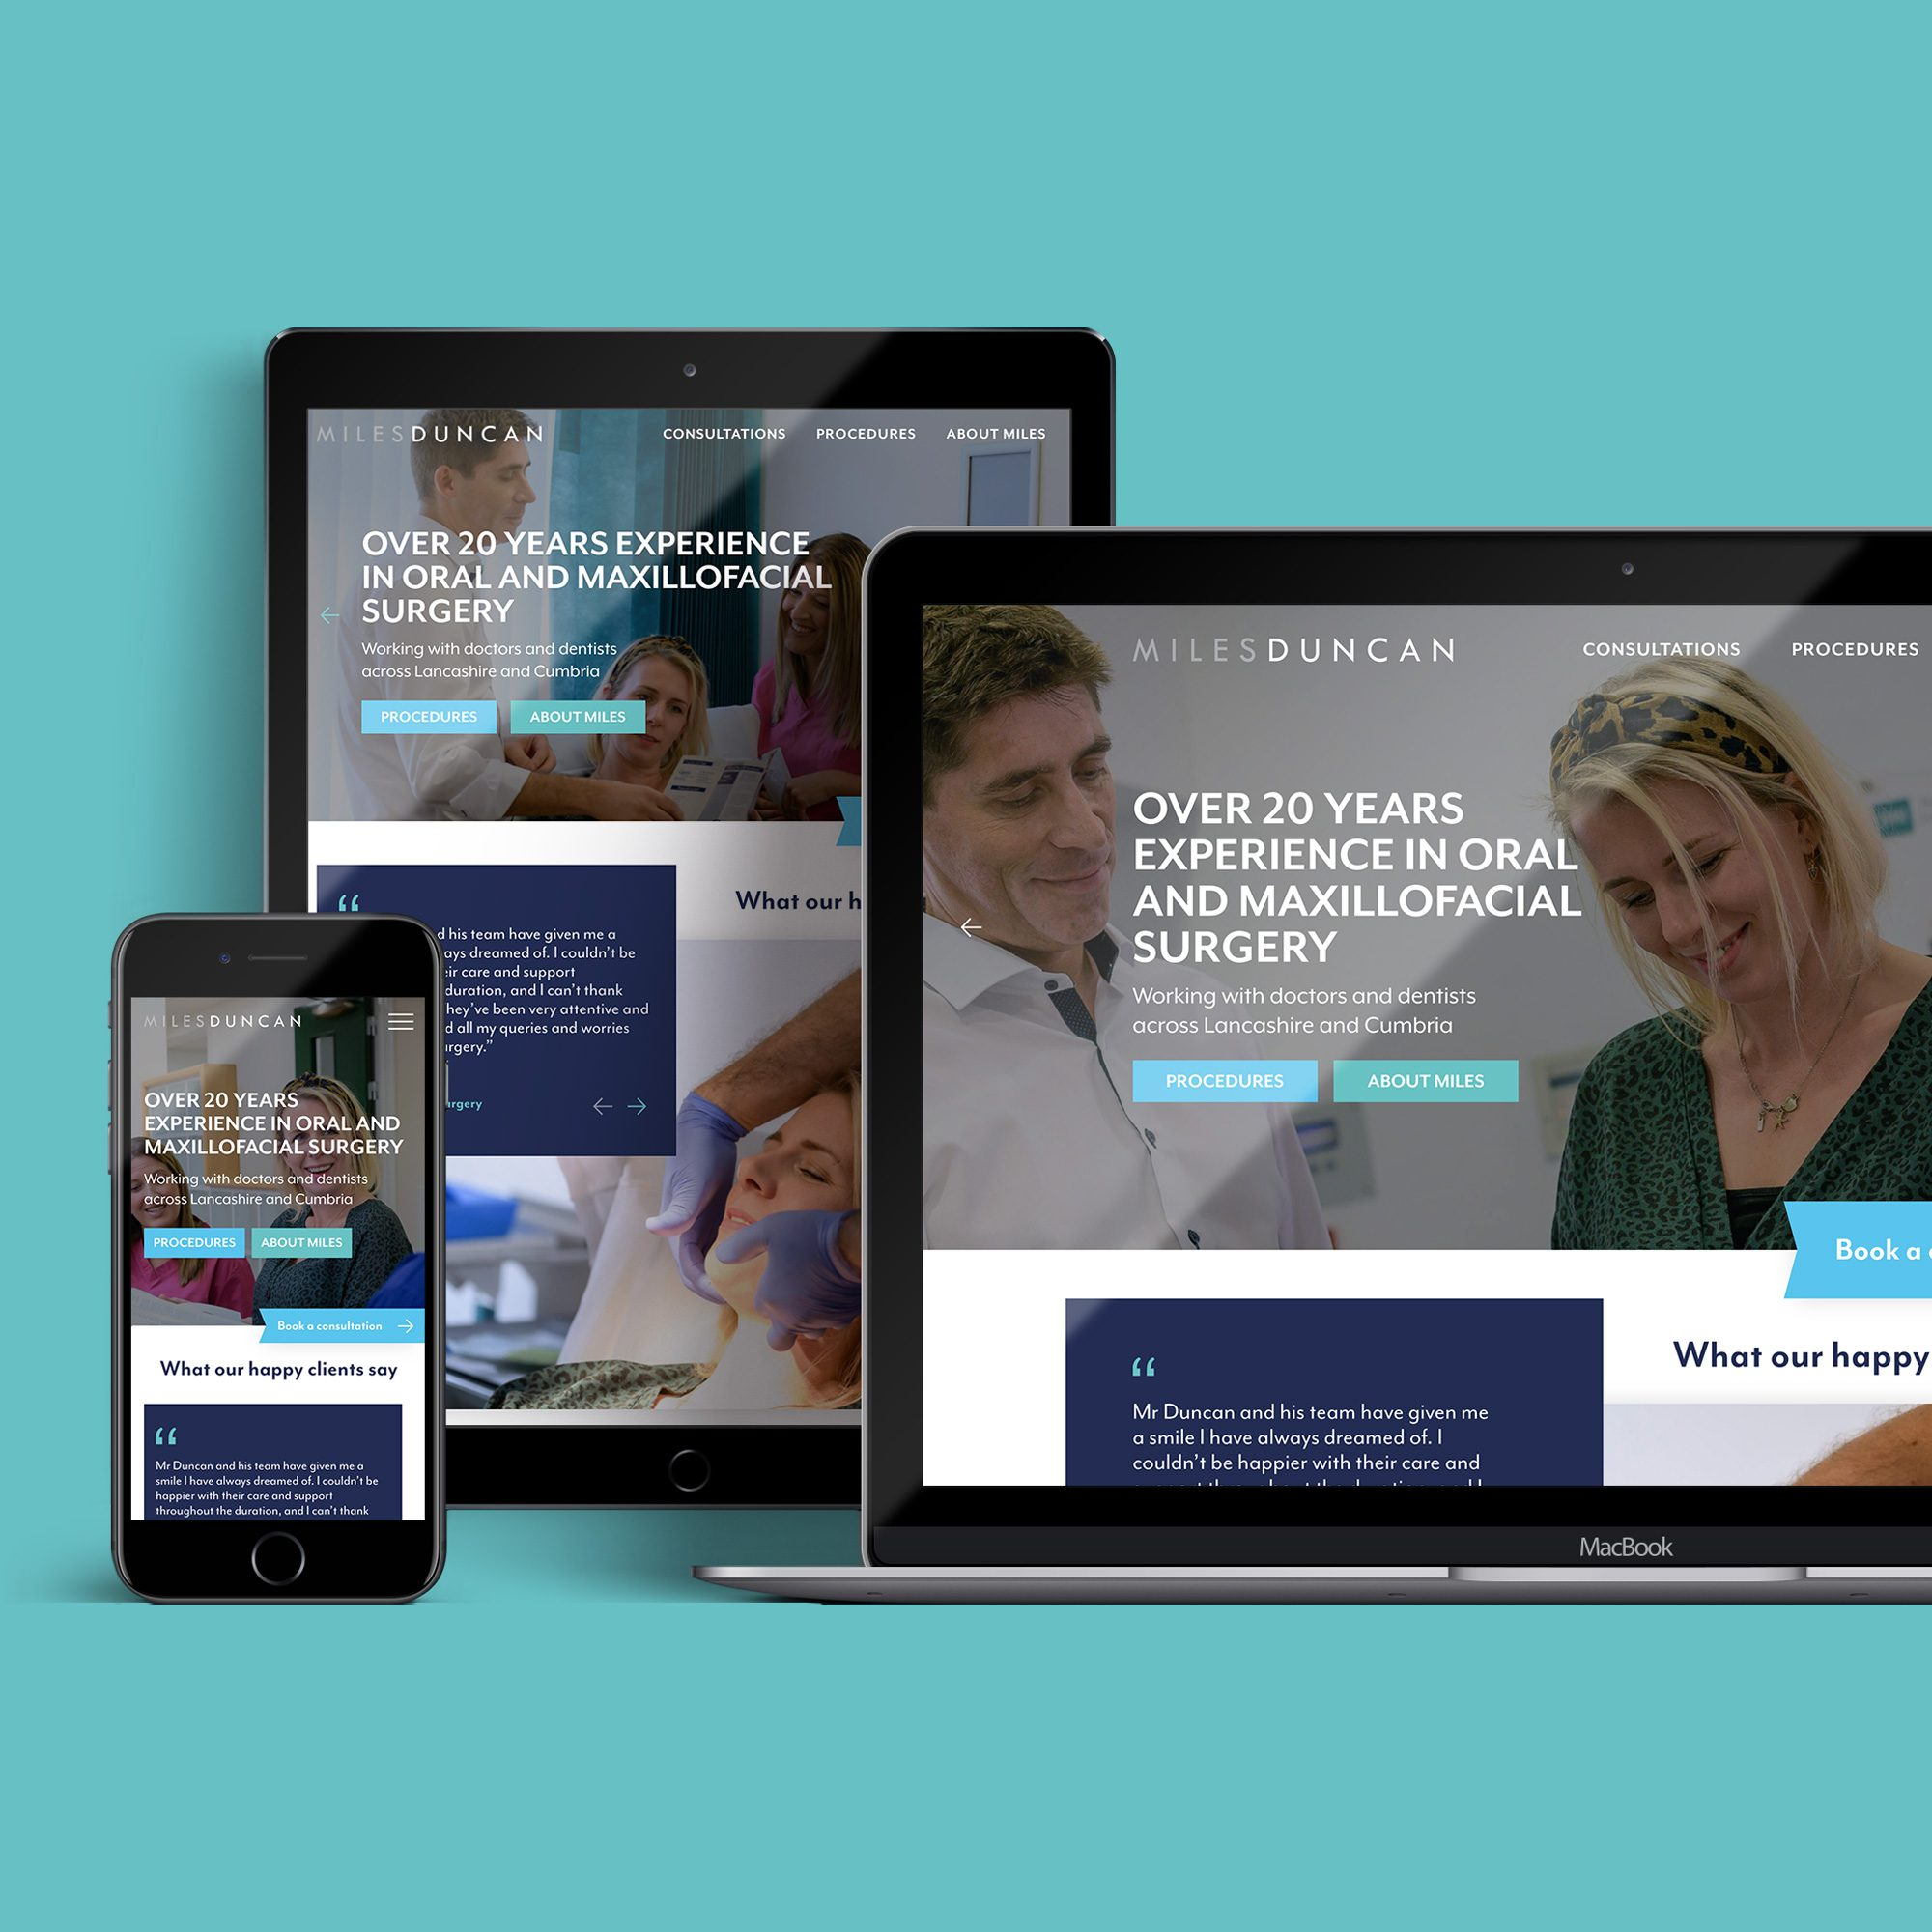 New logo and website design for Lancaster based private surgeon Miles Duncan